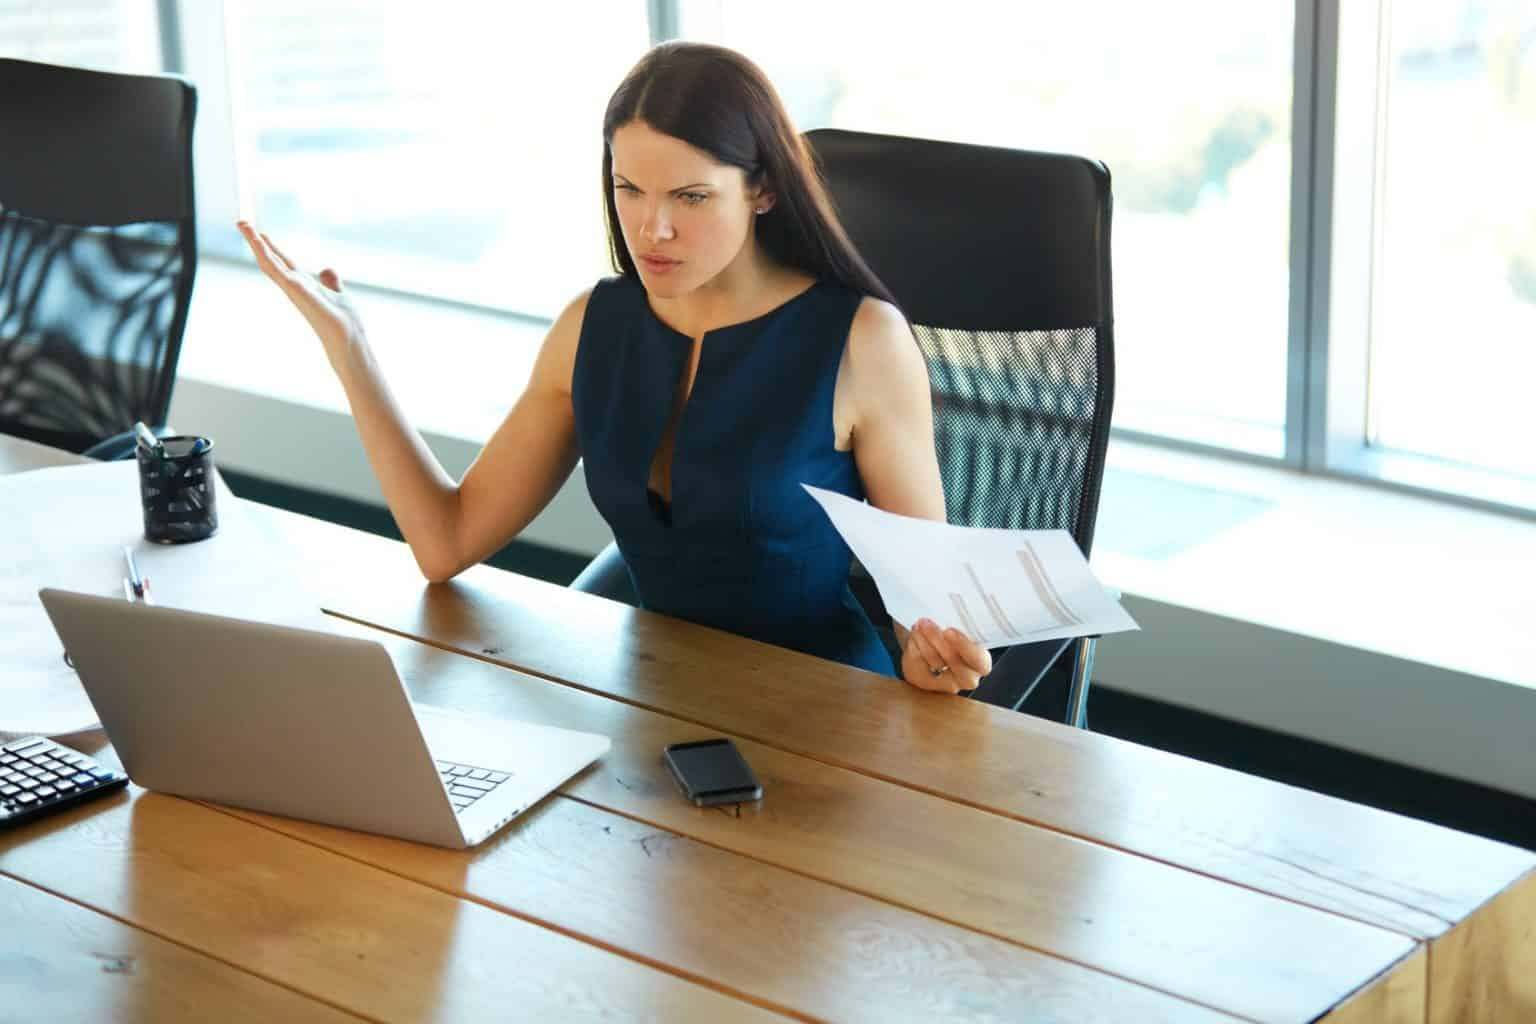 Businesswoman receiving questionable advice to access super